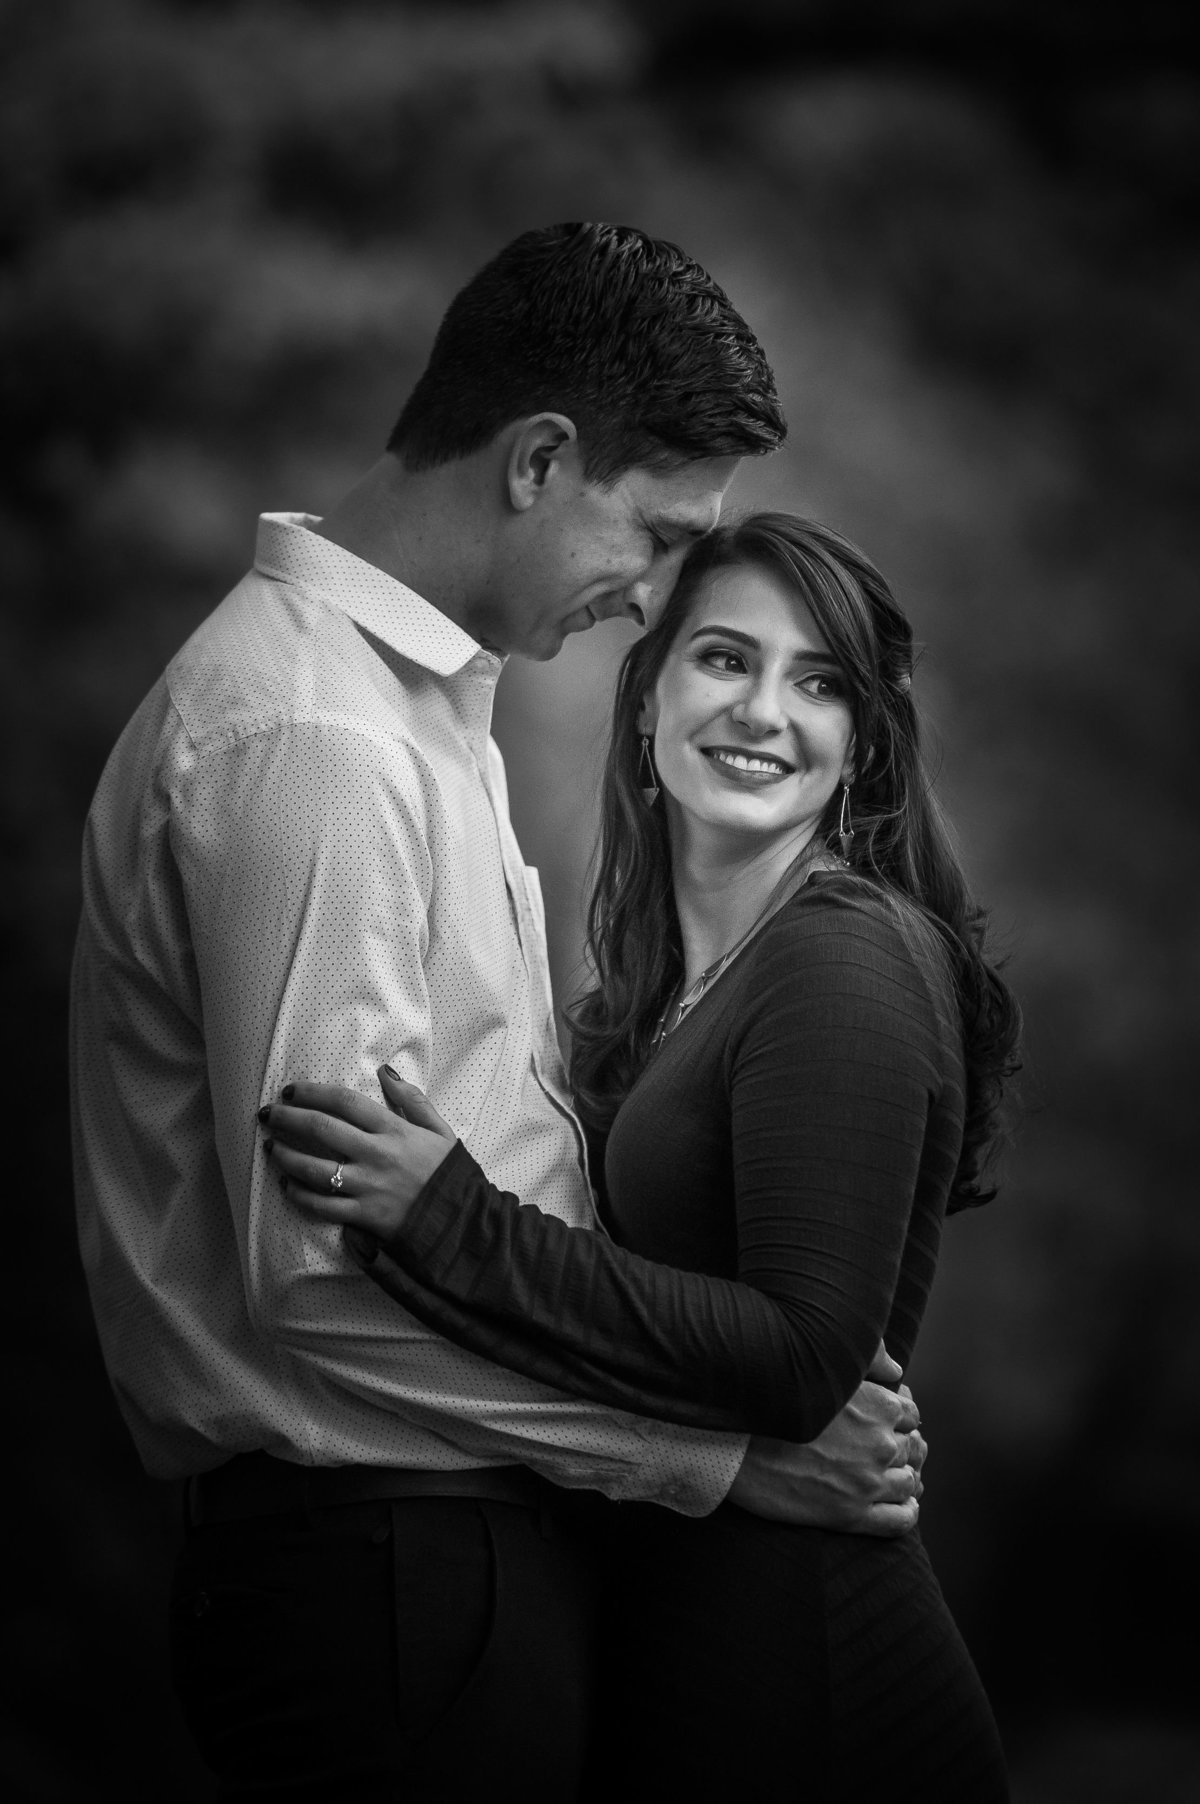 monika+bruno_engaged_jtp2018-63